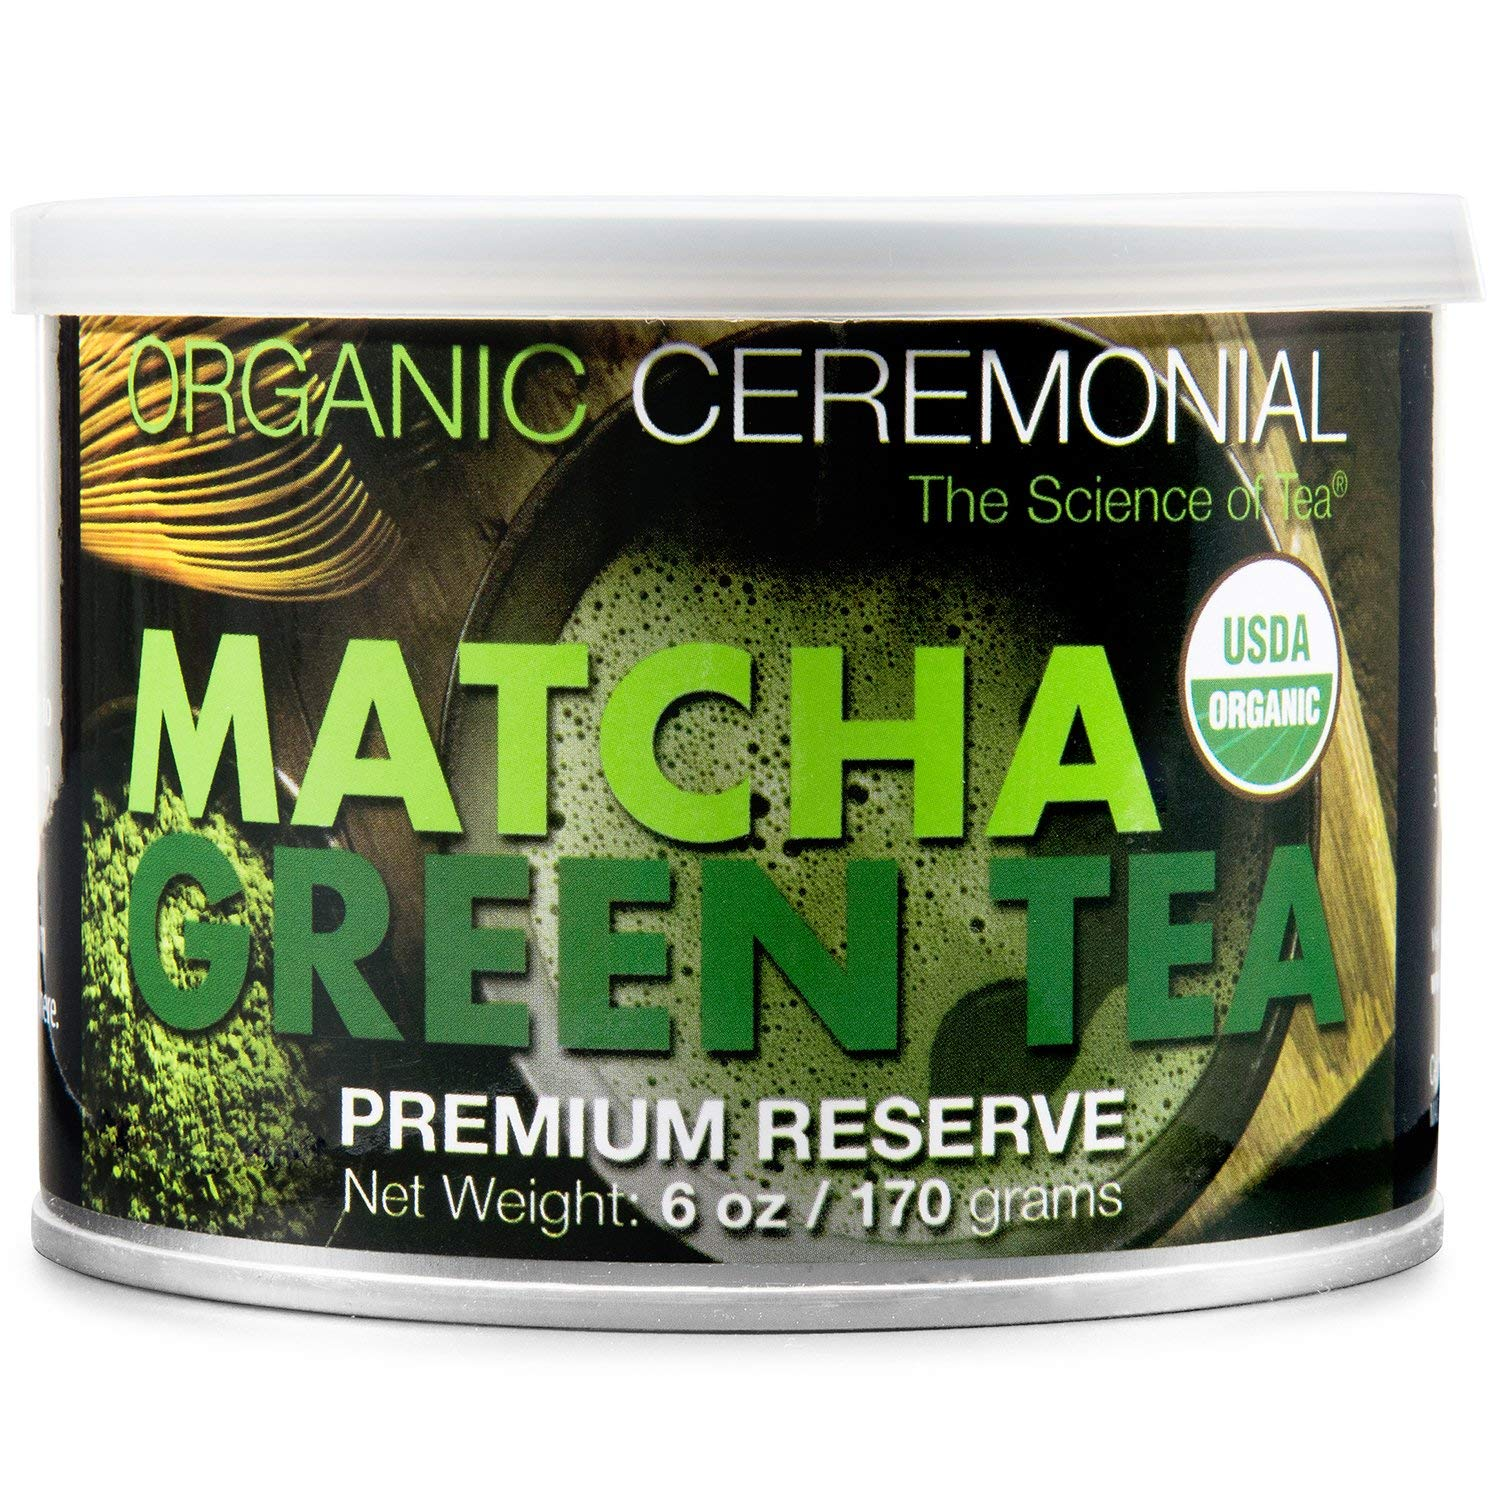 MatchaDNA Certified Organic Ceremonial Grade Matcha Green Tea Powder, TIN CAN (6 Ounce)